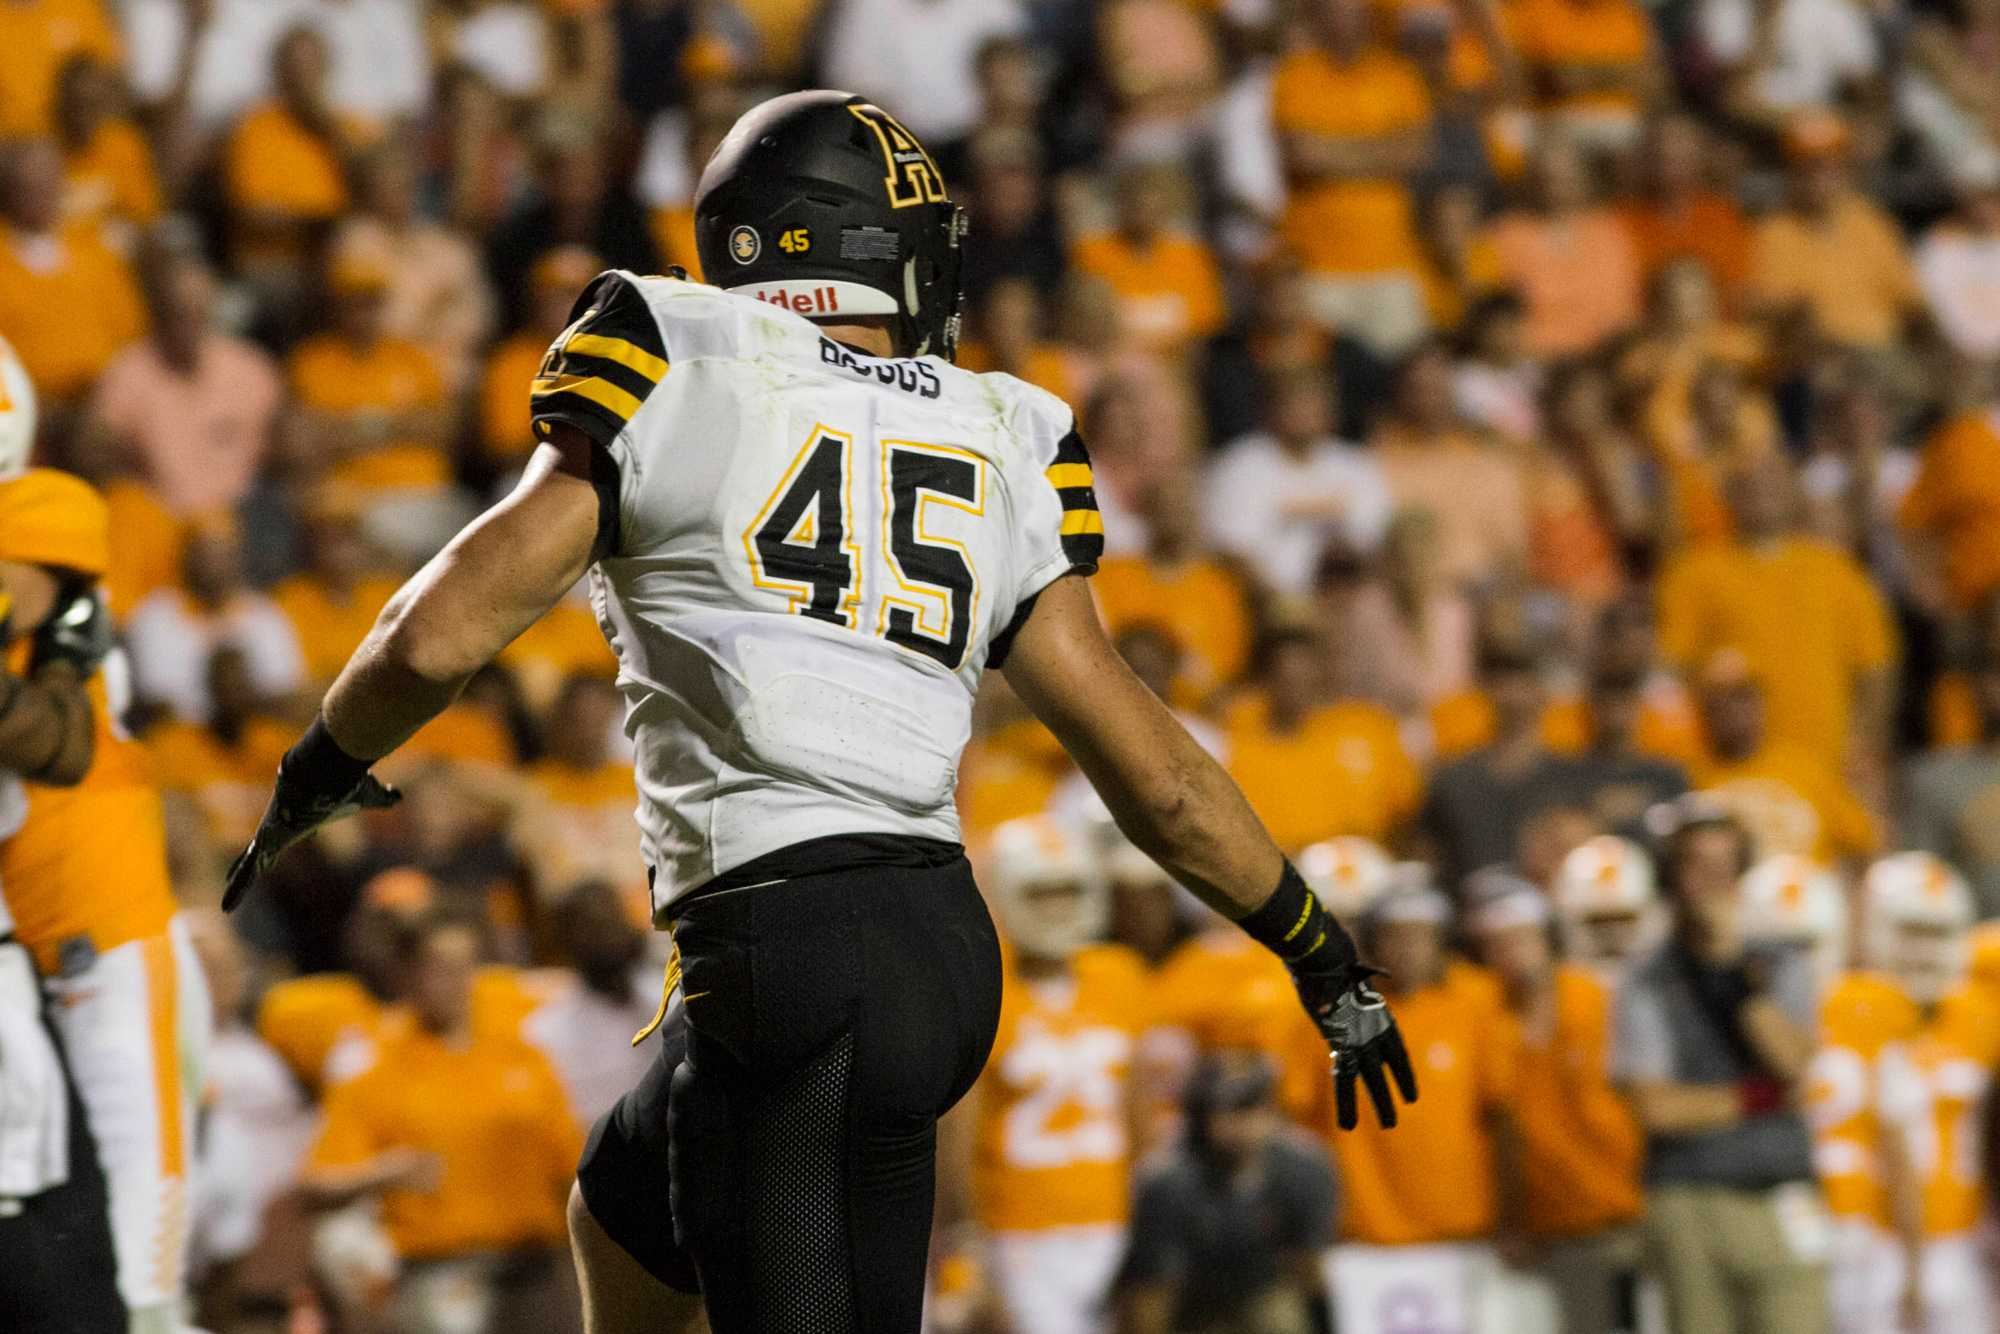 Inside+Linebacker%2C+Eric+Boggs%2C+looks+back+towards+his+teammates+during+the+game+against+Tennesse+in+2016.+The+Mountaineers+lost+the+away+game+in+overtime+with+the+final+score+being+20-13.